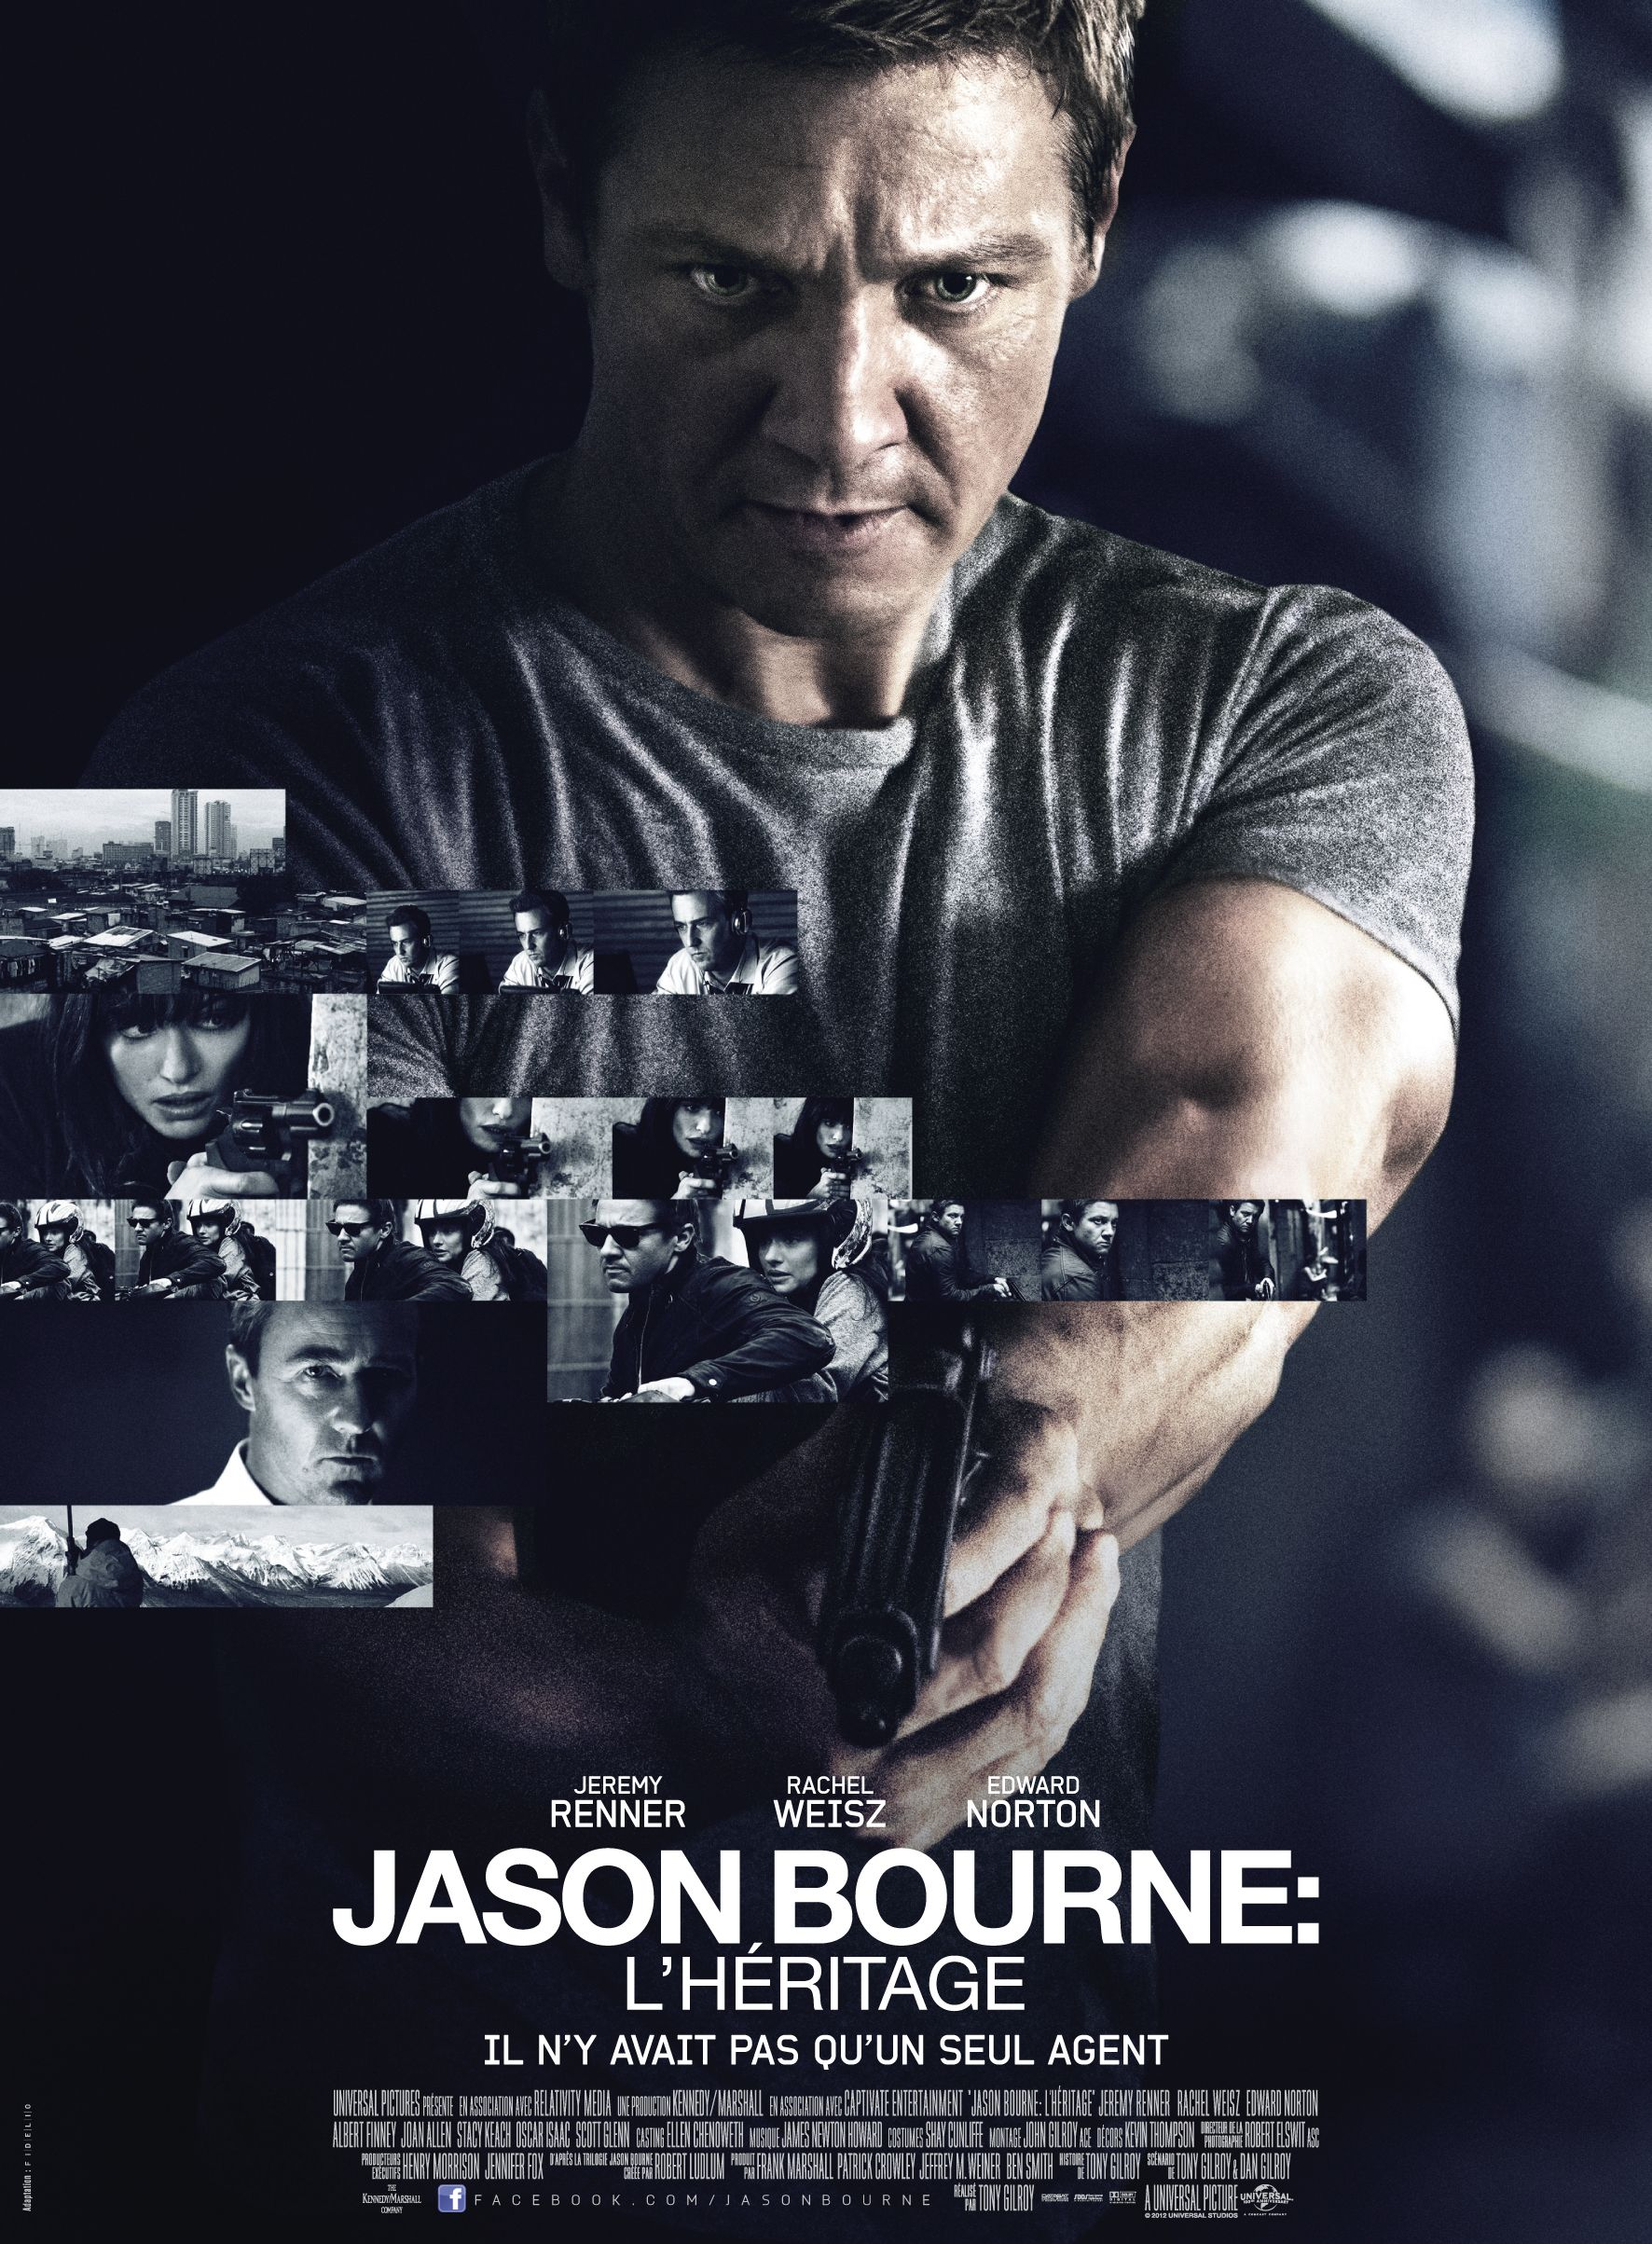 Pin By Sonitta On Movies I Watched Bourne Legacy Jason Bourne Bourne Movies